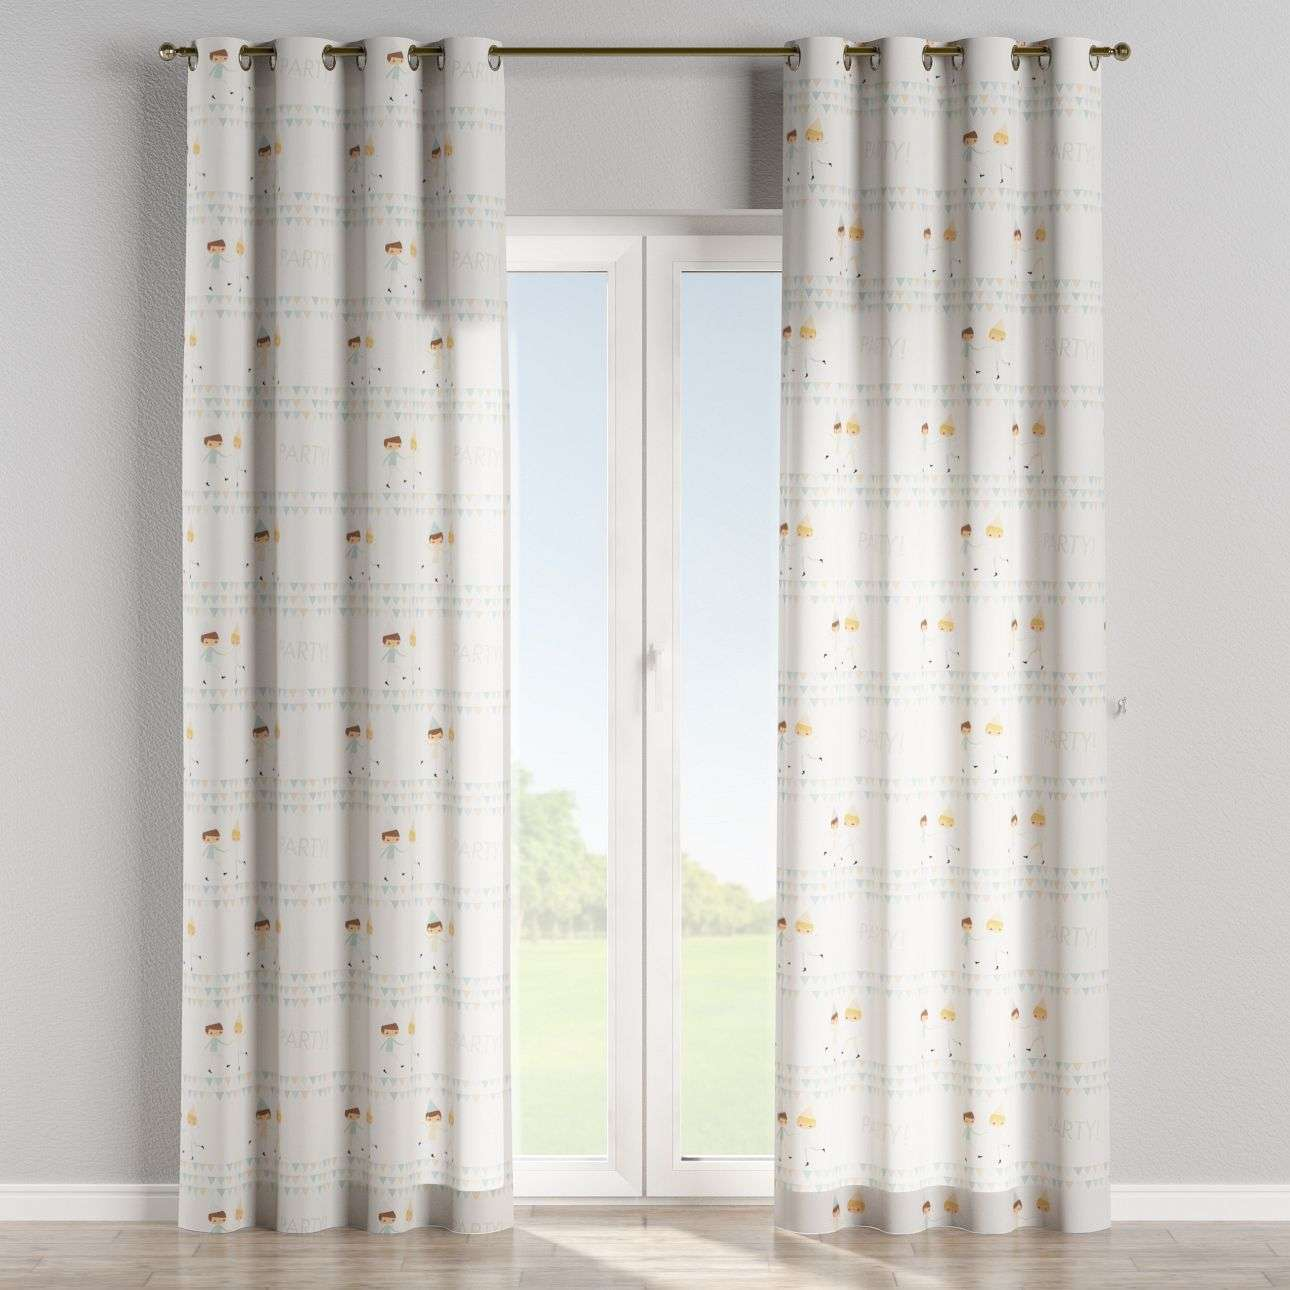 Eyelet curtains 130 x 260 cm (51 x 102 inch) in collection Apanona, fabric: 151-01